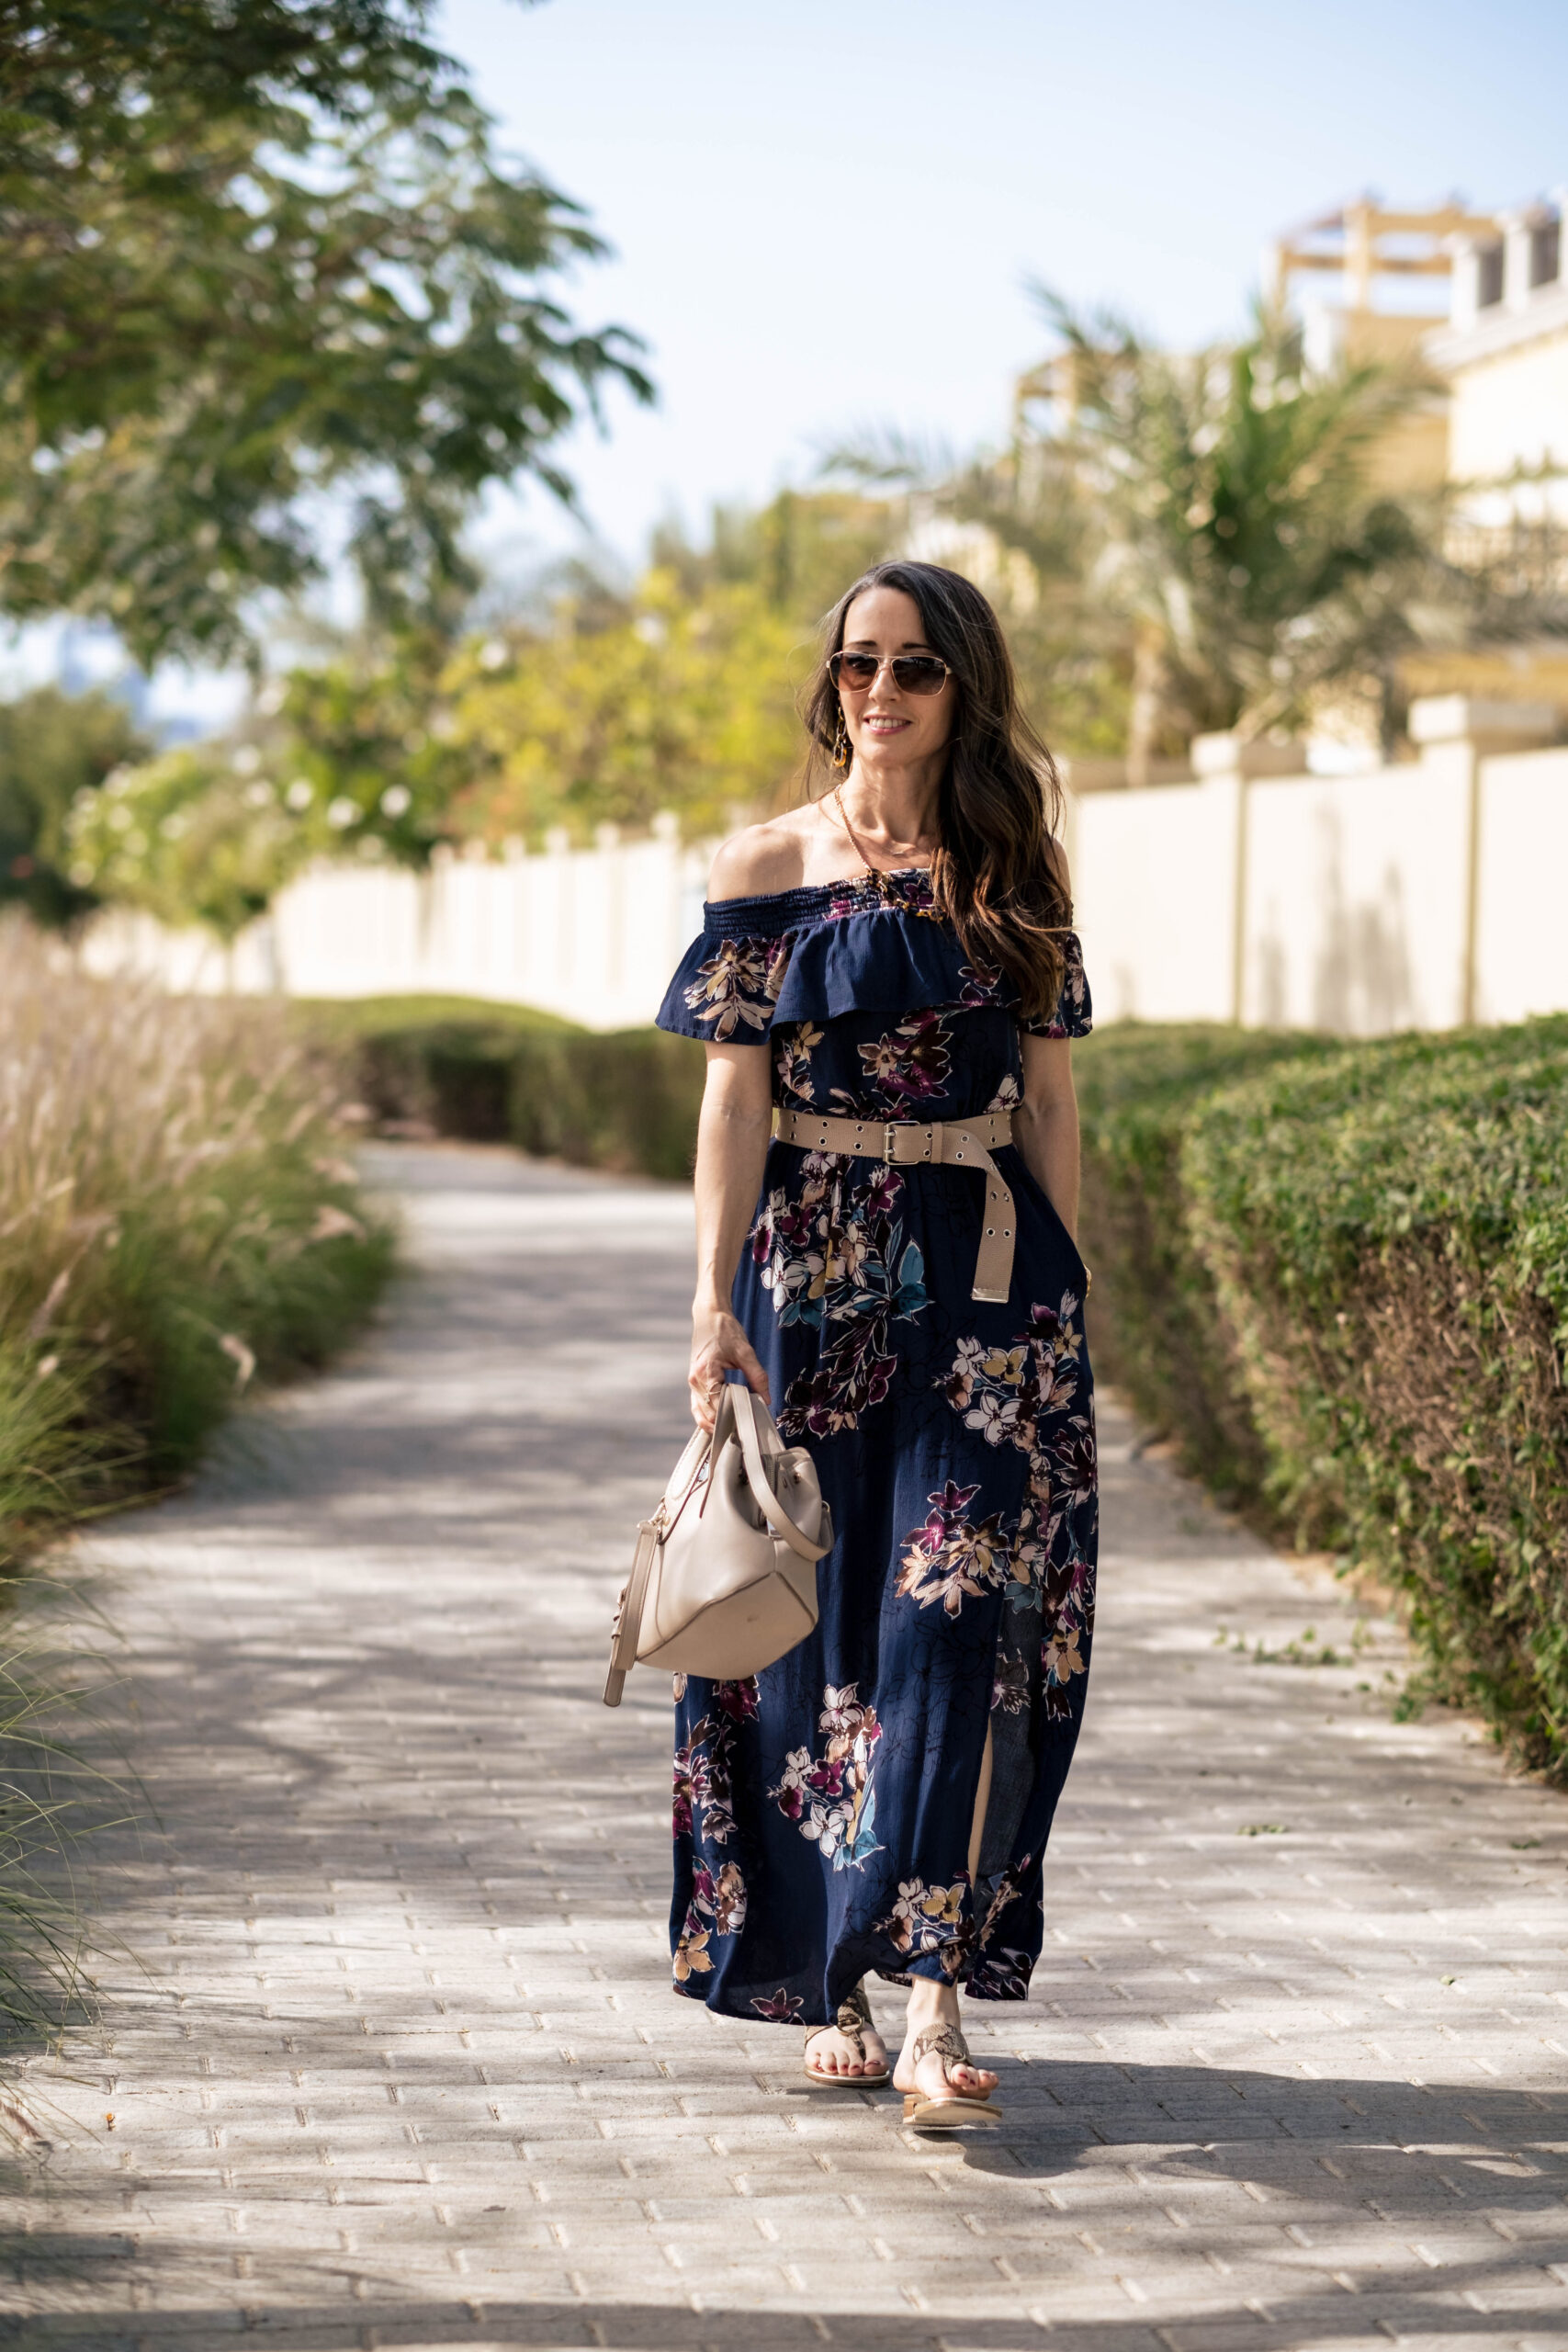 Walking to camera with floral off the shoulder dress, neutral belt, bag and rose gold sunglasses